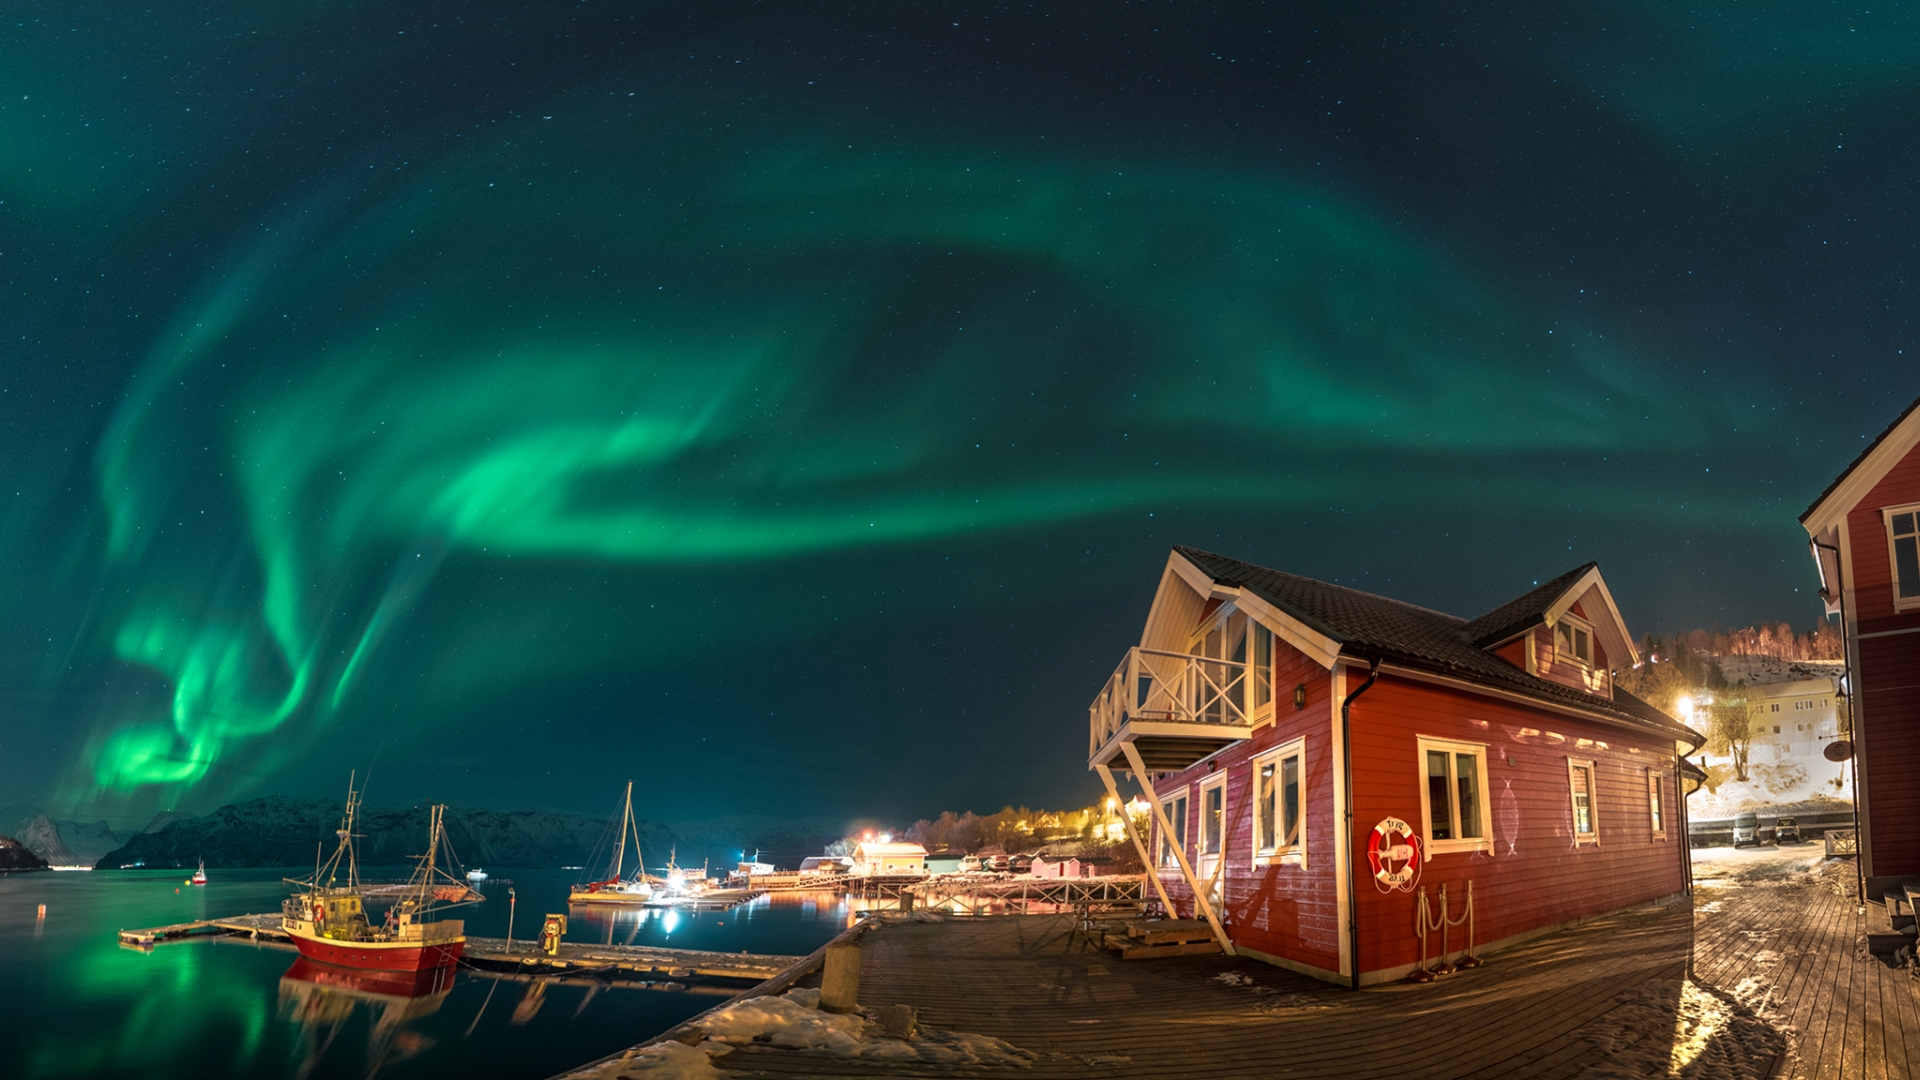 Apartments under the Northern Lights